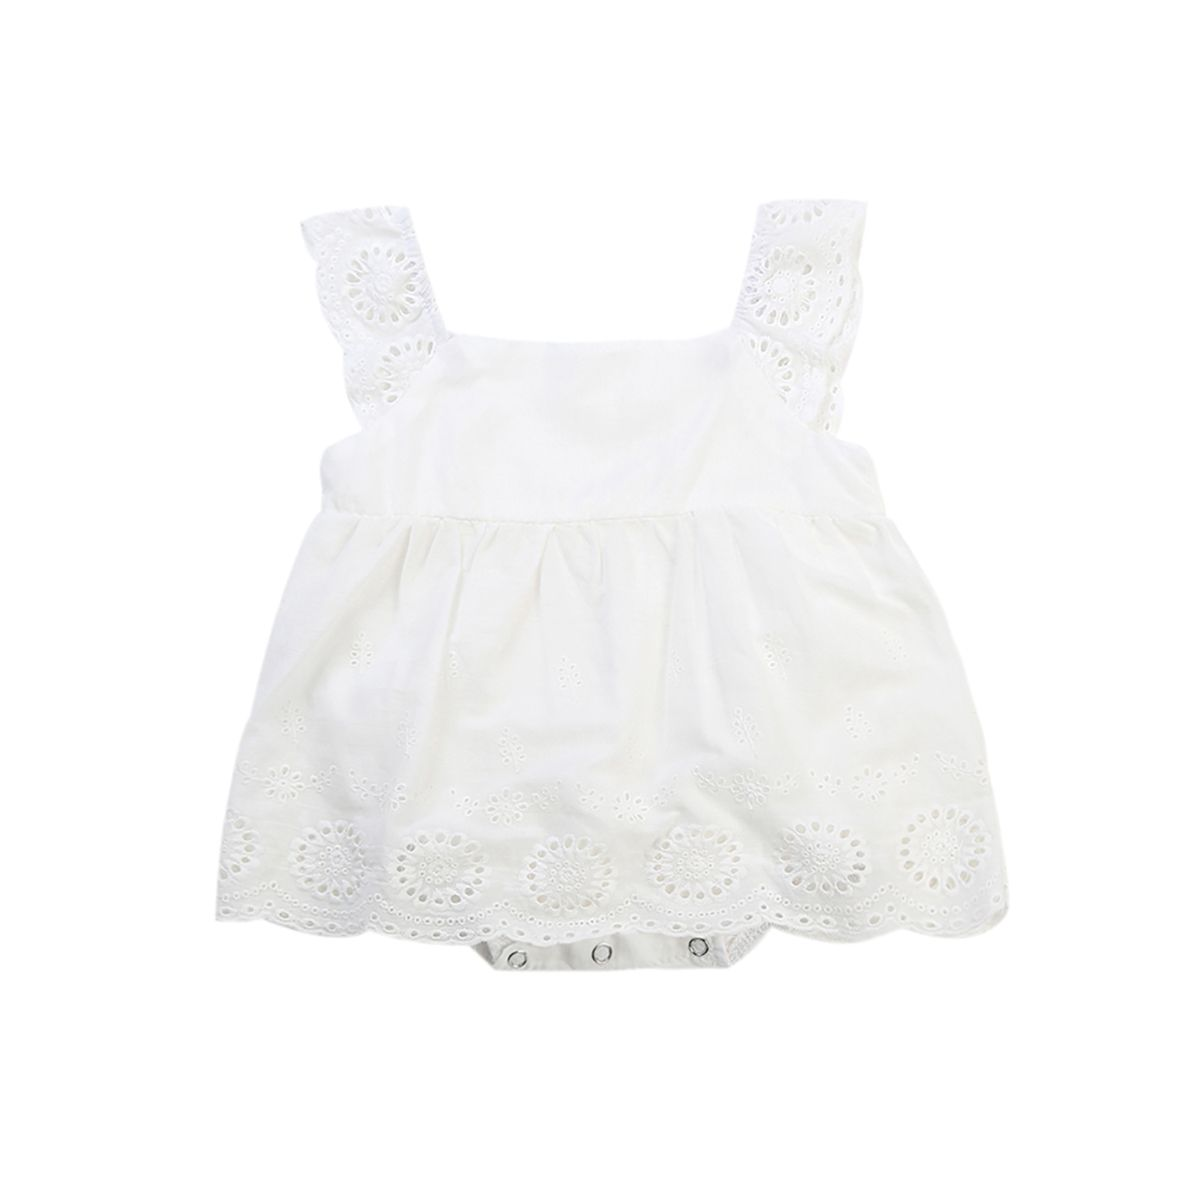 cc851840e31 Baby Girl Romper Jumpsuit Sleeveless Cute White Cotton Clothes Outfits  Newborn Baby Kids Girls Infant Clothing